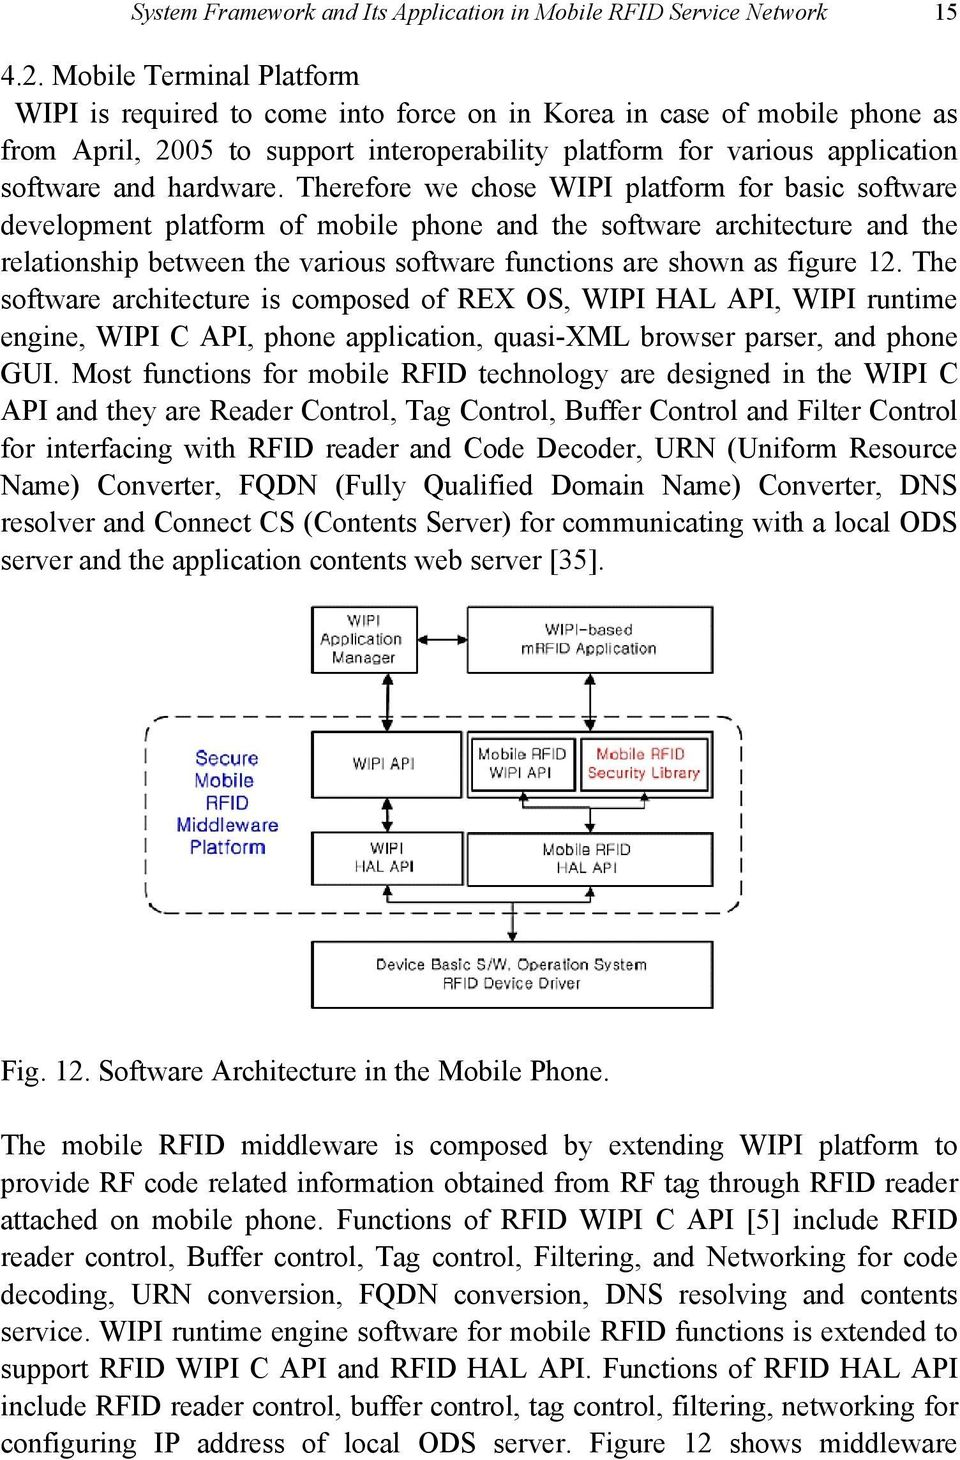 Therefore we chose WIPI platform for basic software development platform of mobile phone and the software architecture and the relationship between the various software functions are shown as figure